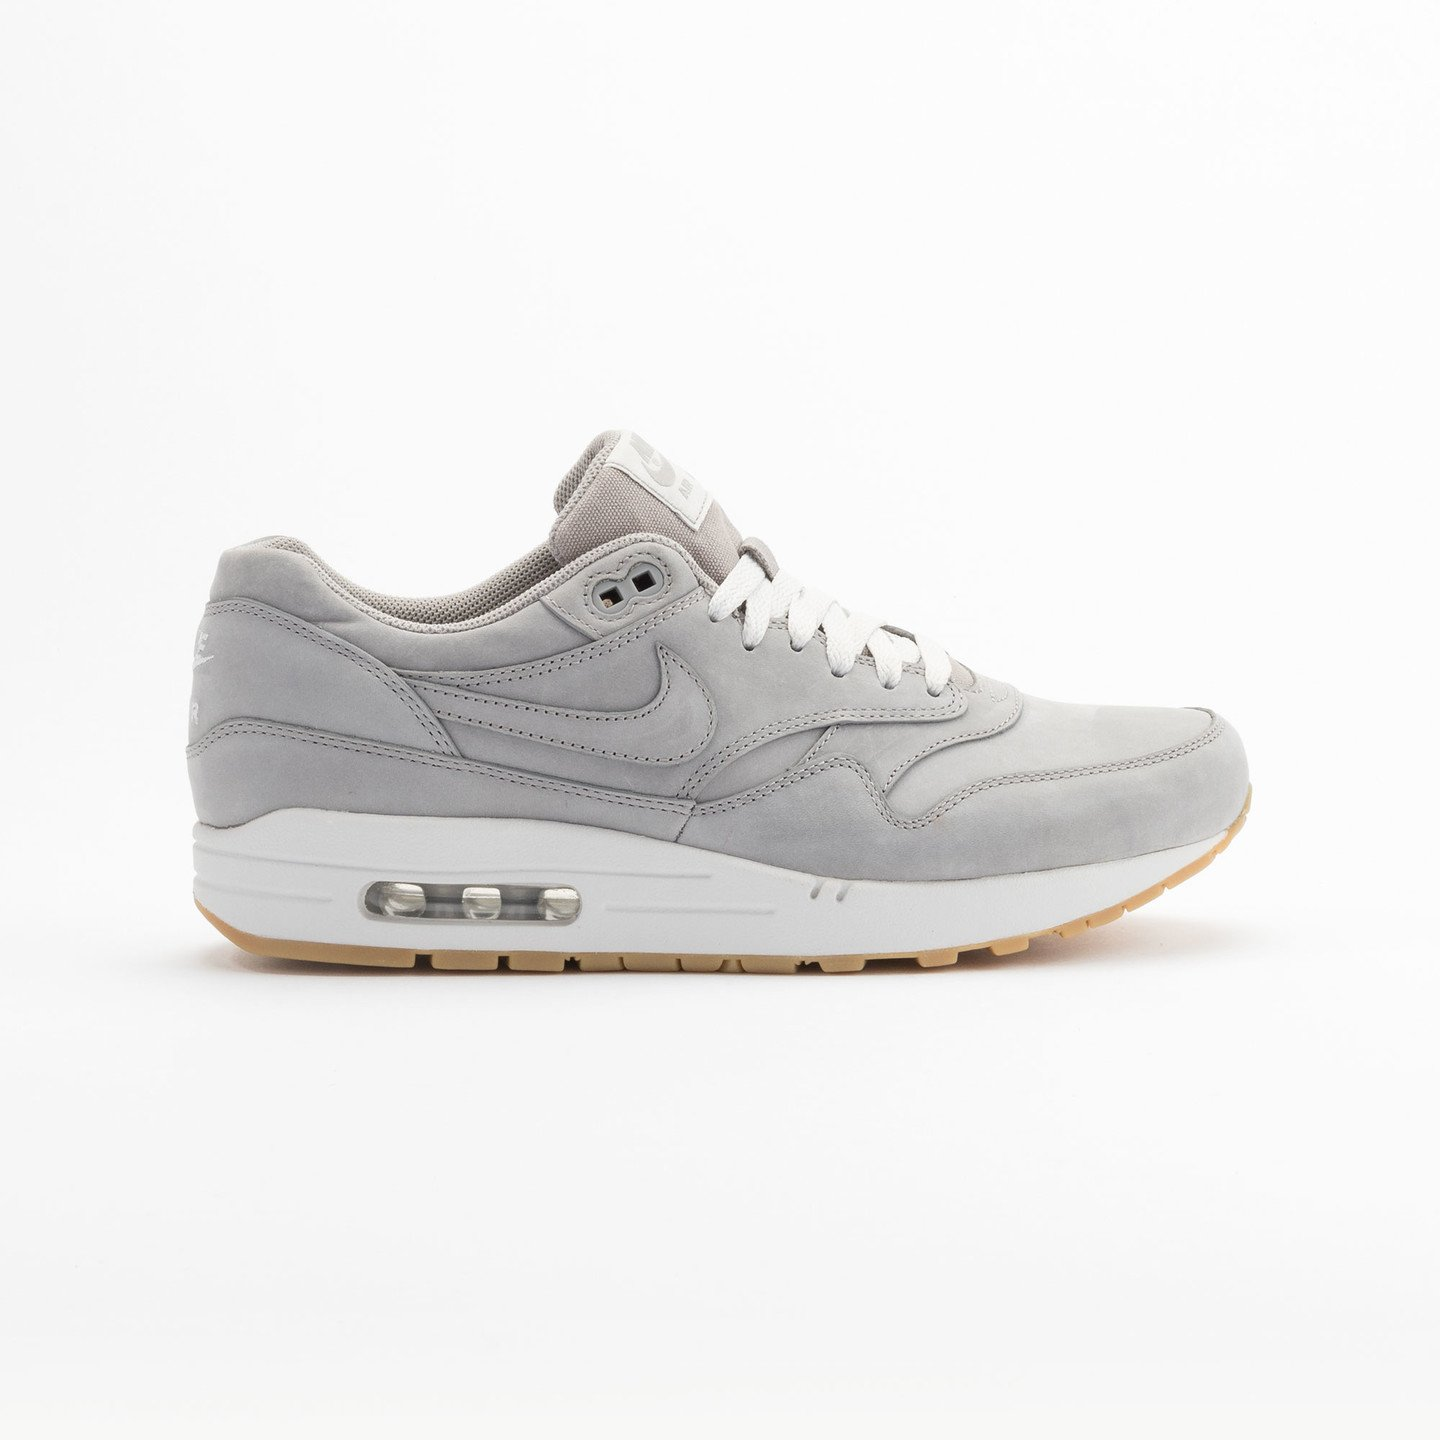 Nike Air Max Leather 1 Premium Medium Grey 705282-005-44.5